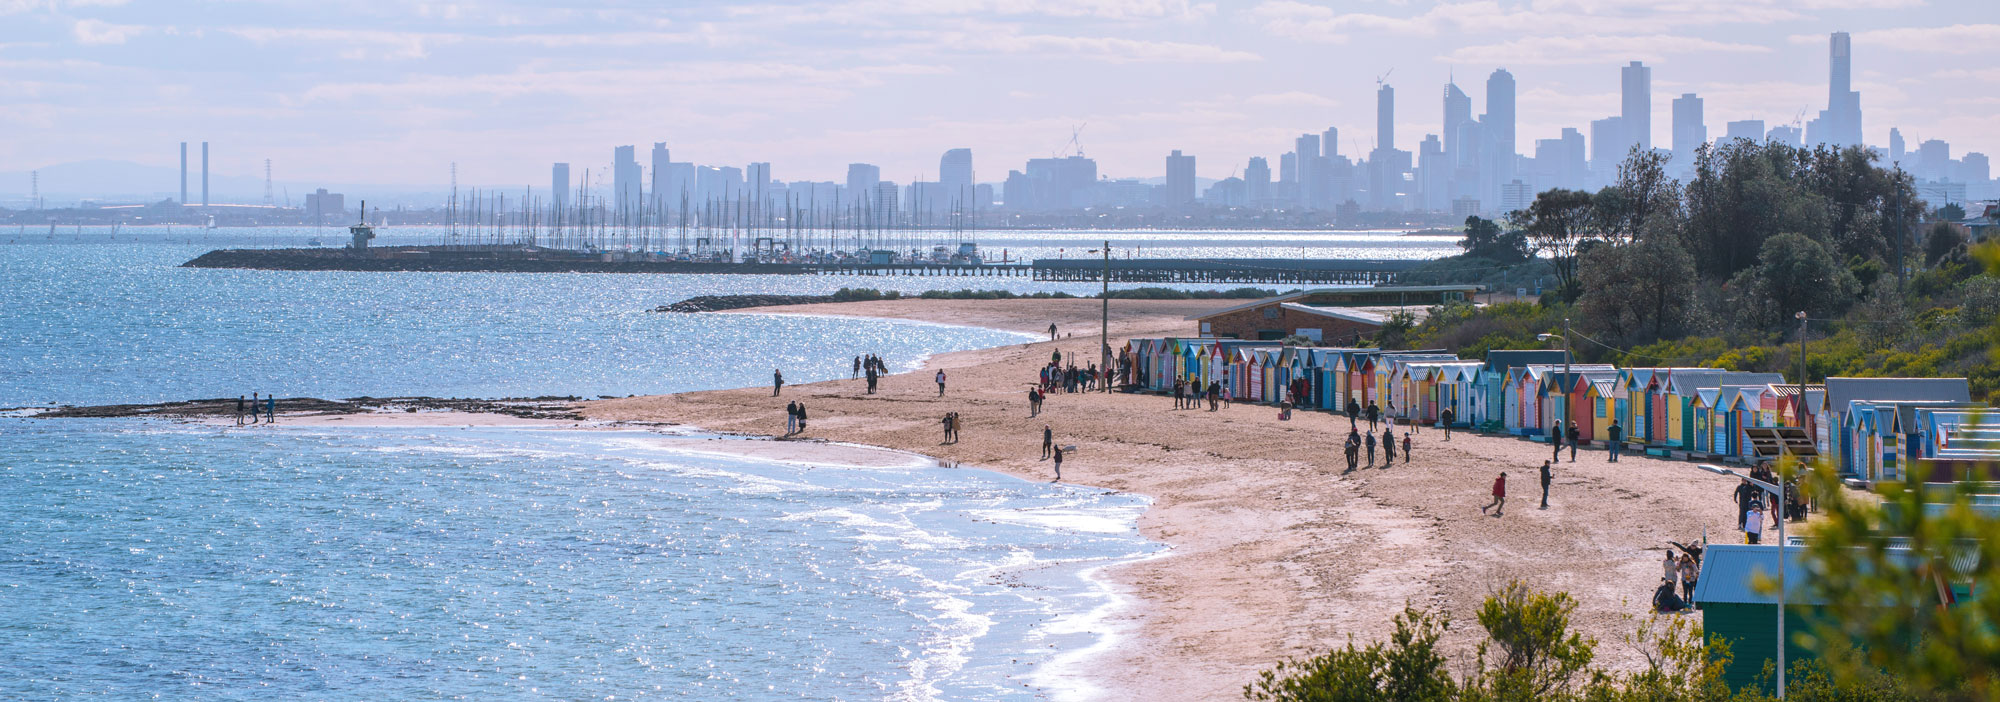 View looking North toward the City of Melbourne with Middle Brighton Pier and Bathing Boxes on Dendy Street Beach in the foreground.